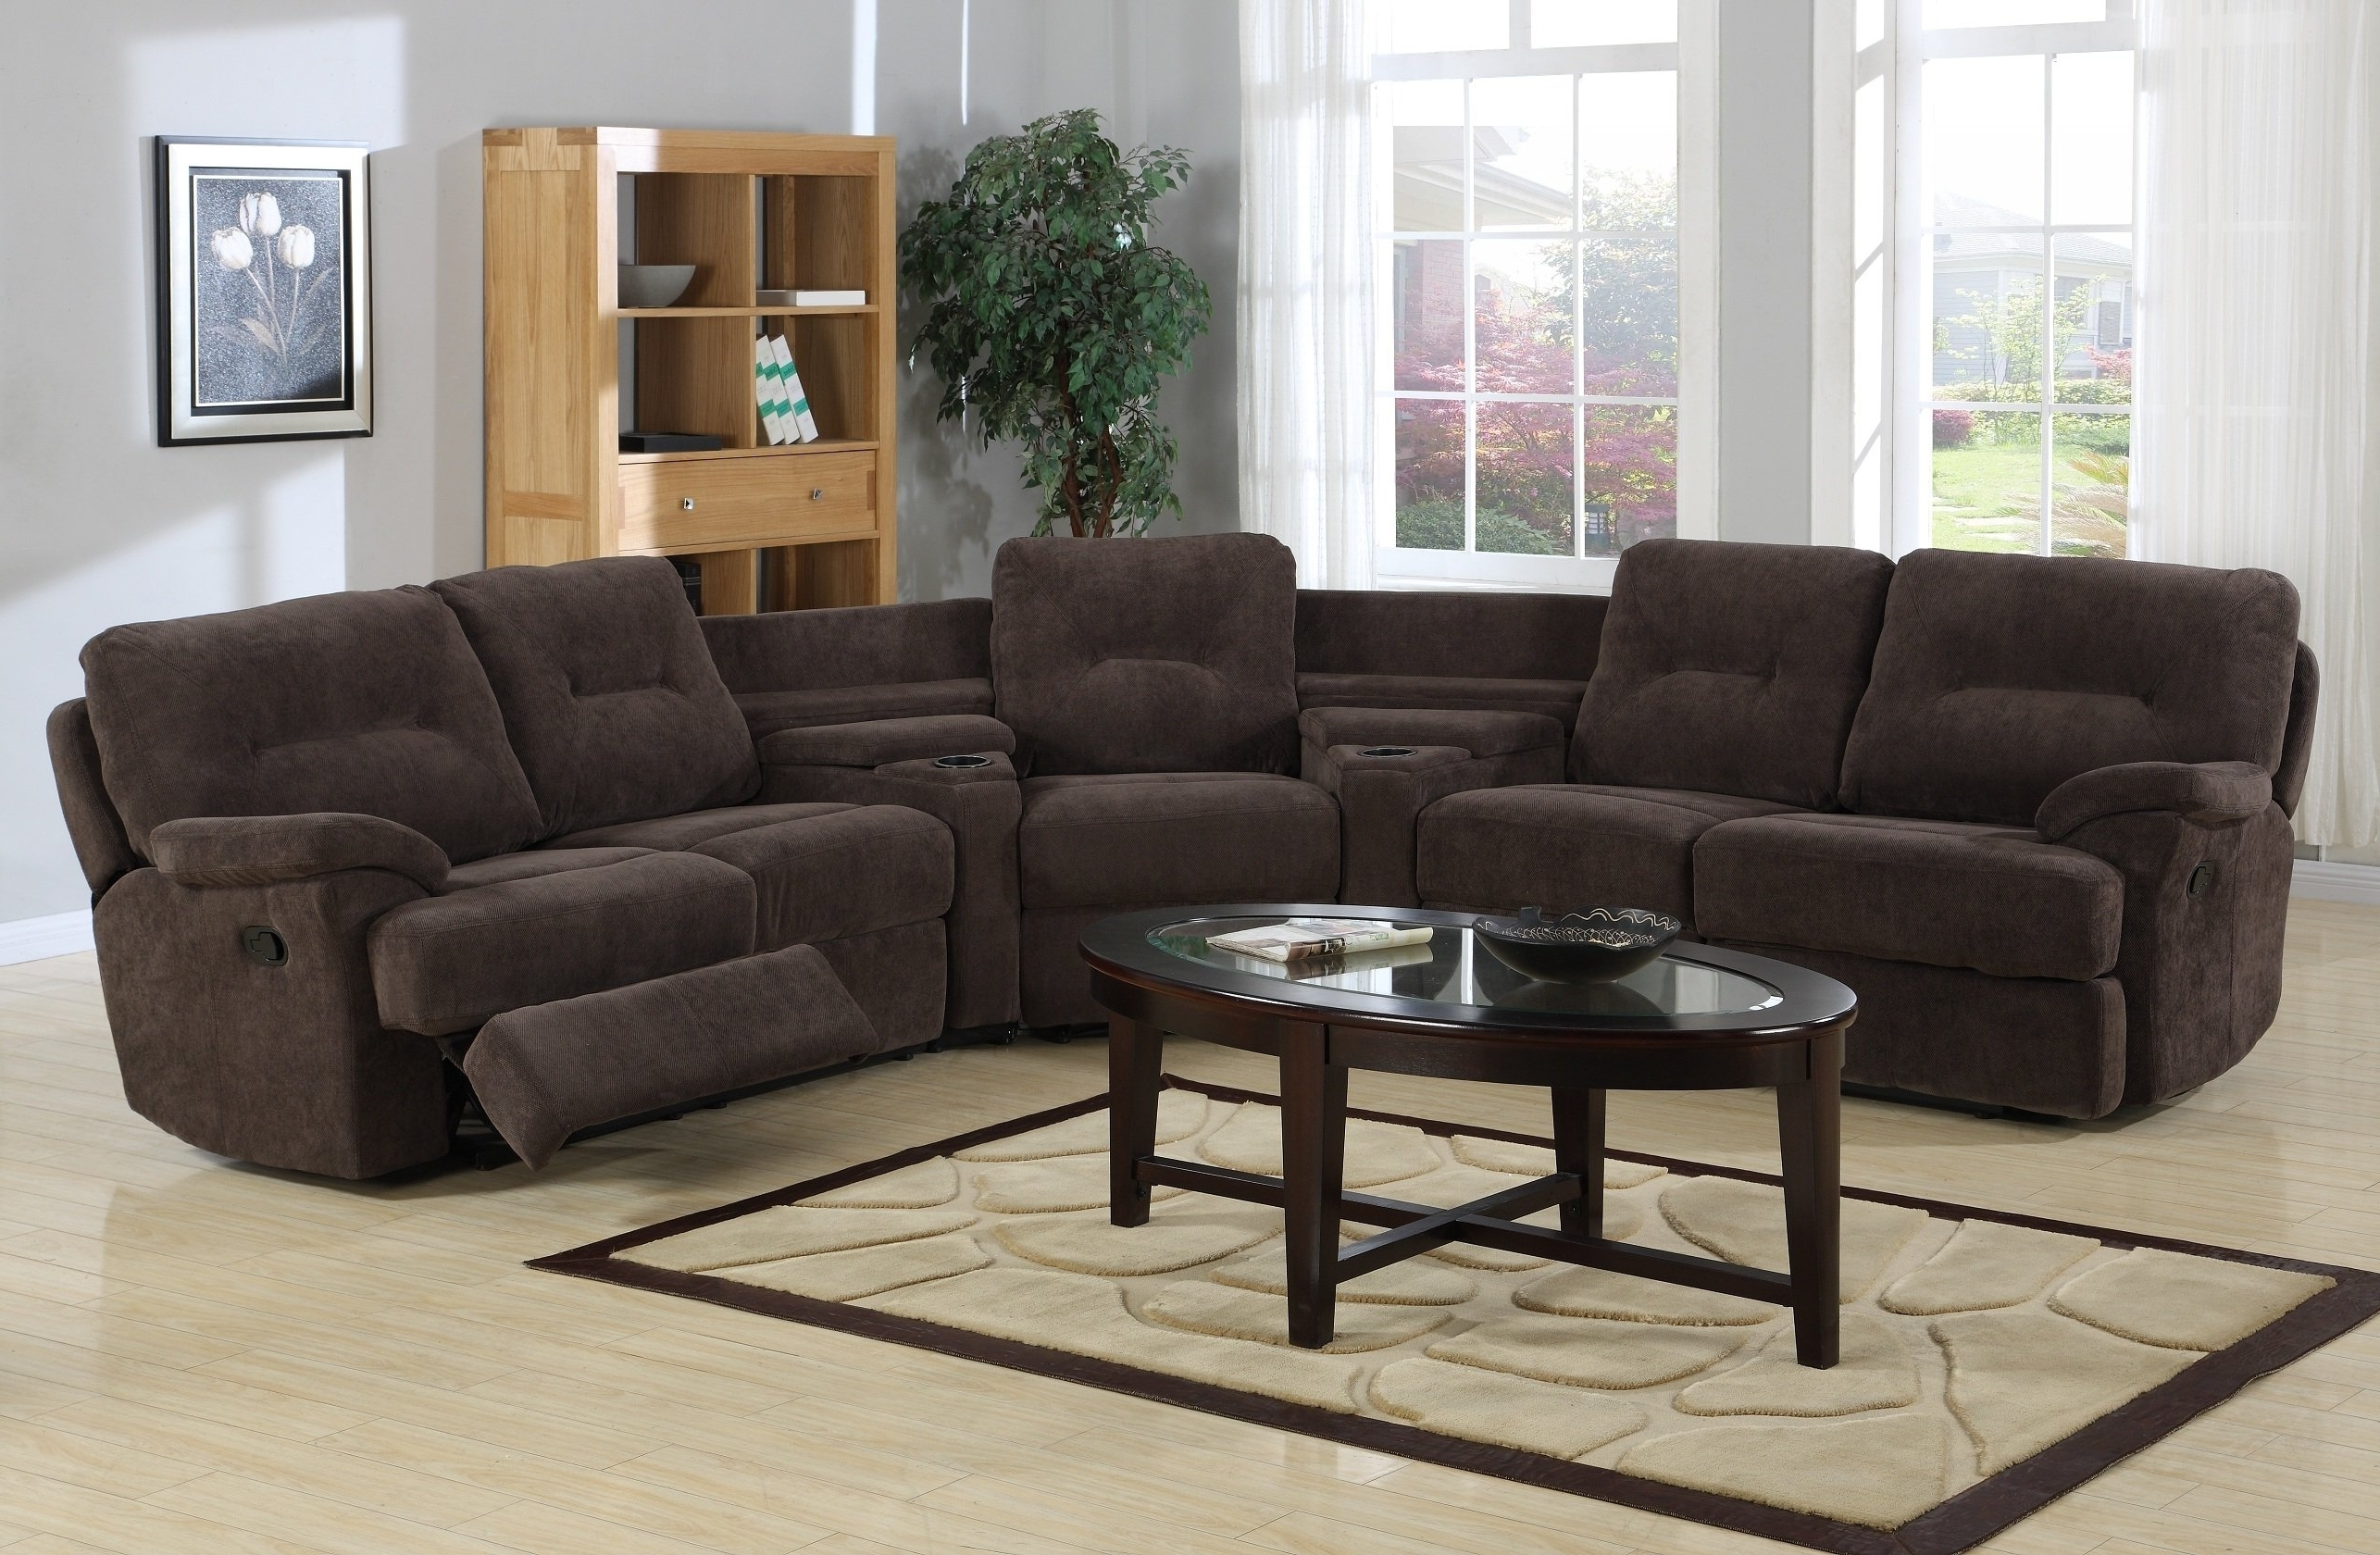 Sofas Center Curved Sectional Sofas Hickory Nc Luxury Sofa With Pertaining To Well Known Hickory Nc Sectional Sofas (View 10 of 15)